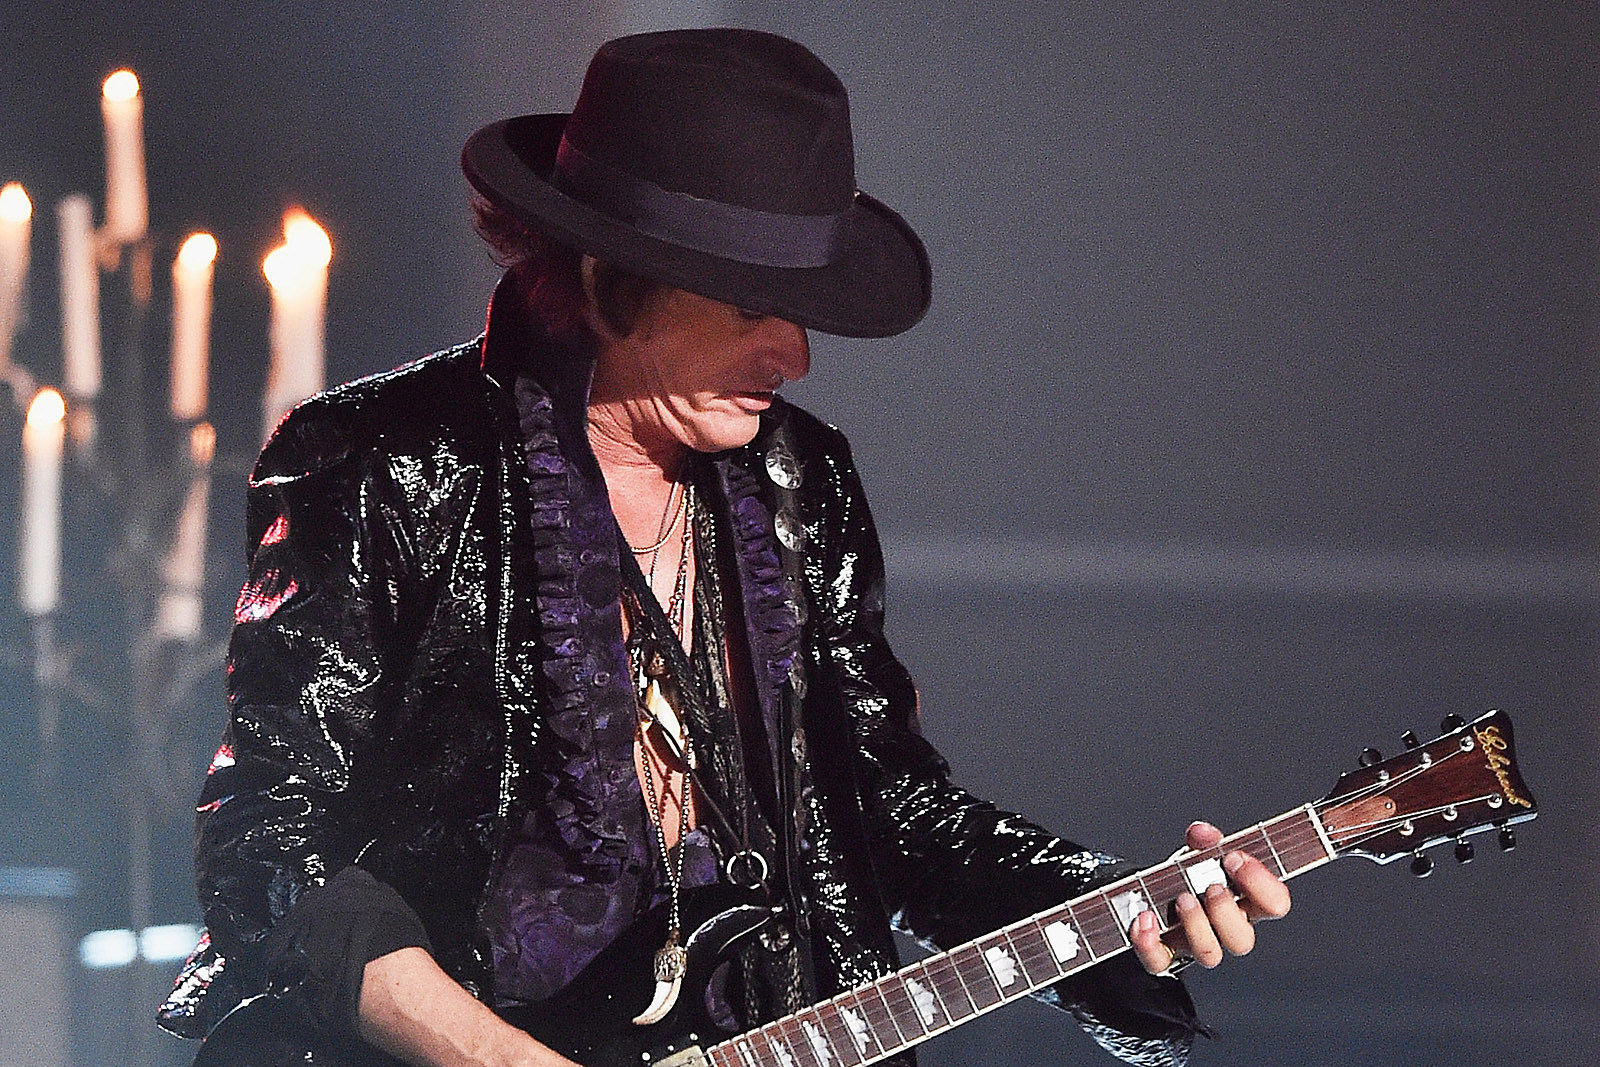 Joe Perry Announces Solo Joe Perry And Friends Shows Dying to be free lyrics. joe perry announces solo joe perry and